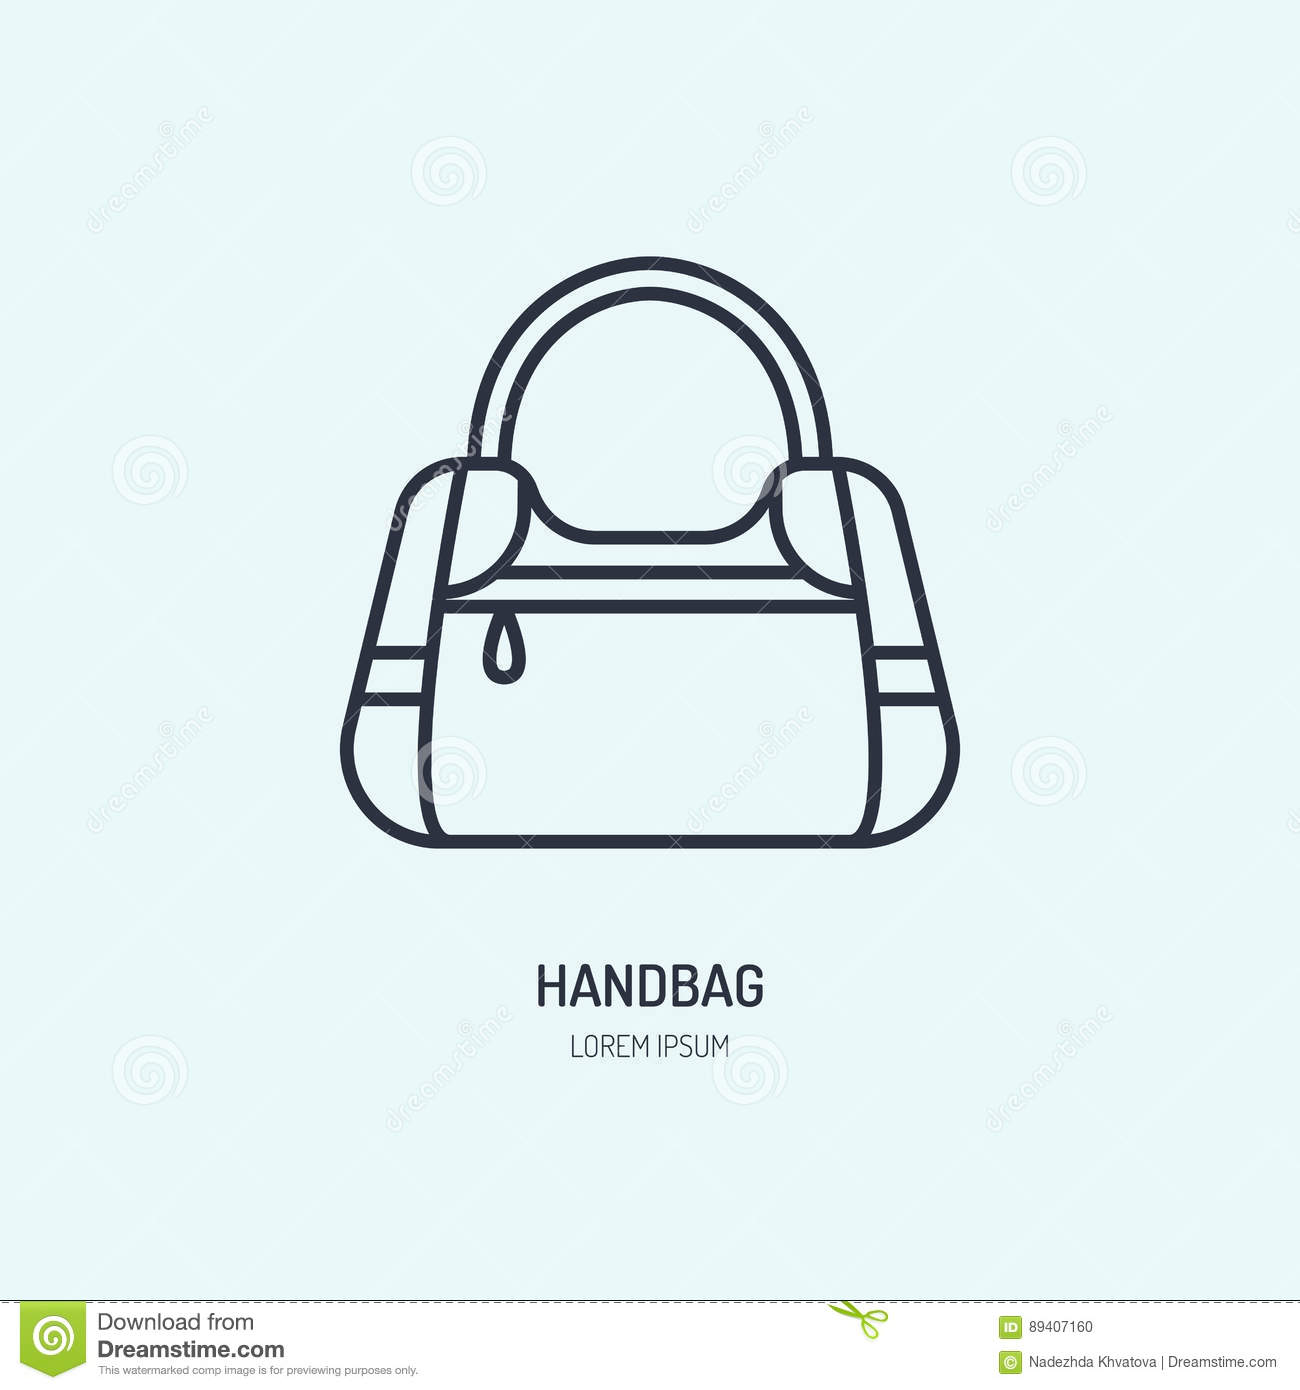 Handbag Repair Line Icon Logo Leather Bag Cleaning Service Flat Sign Illustration Of Women Accessory Stock Vector Illustration Of Icon Design 89407160